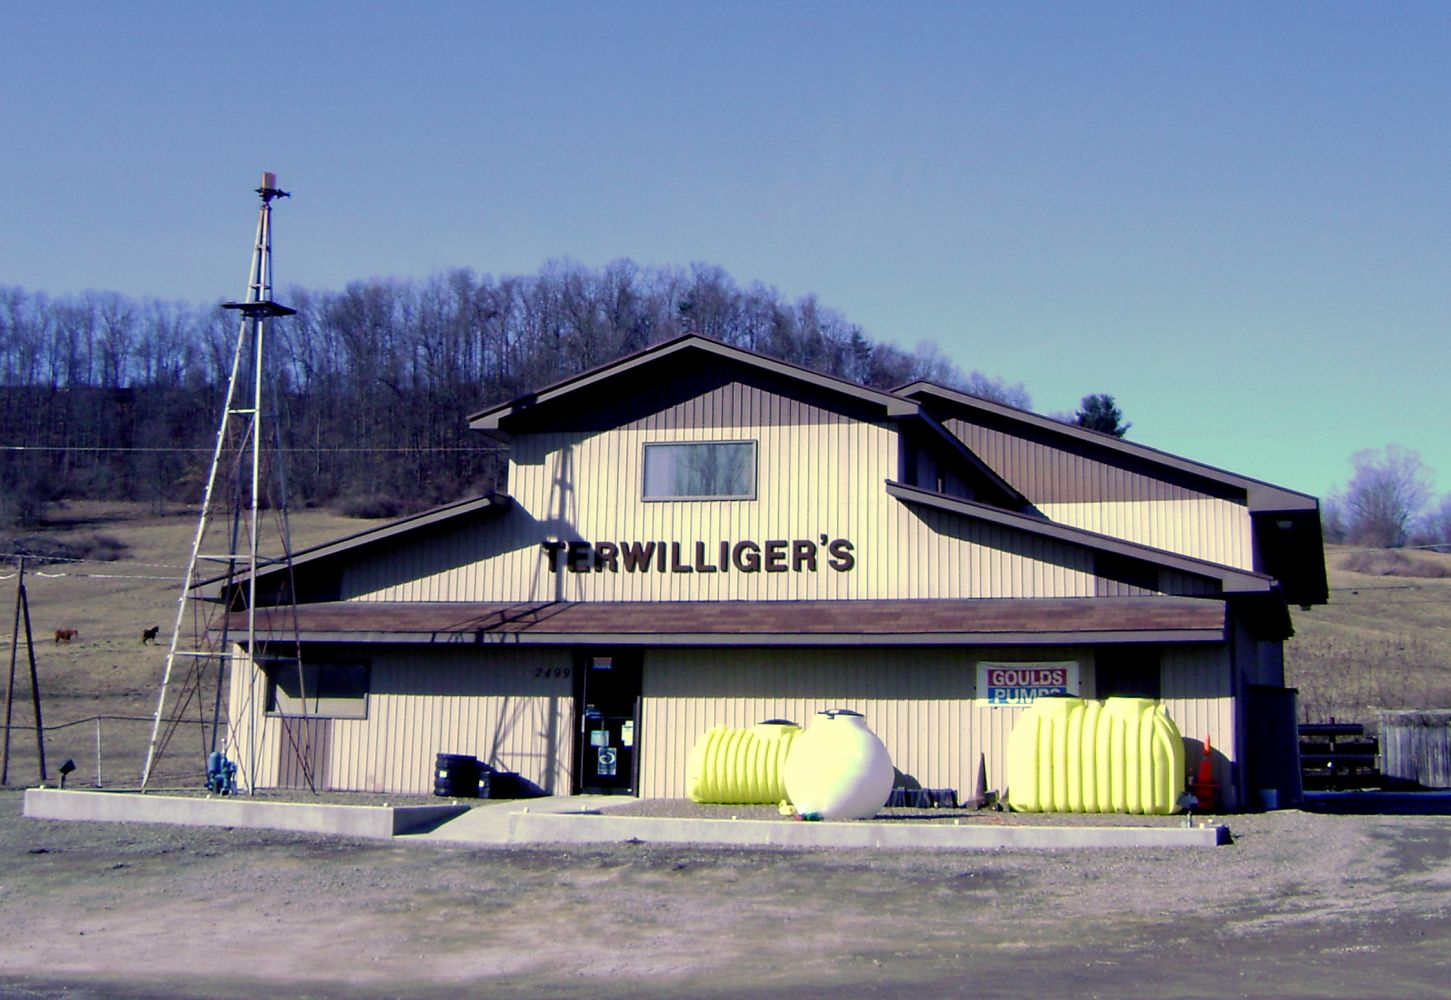 Retail Store located in Painted Post, NY